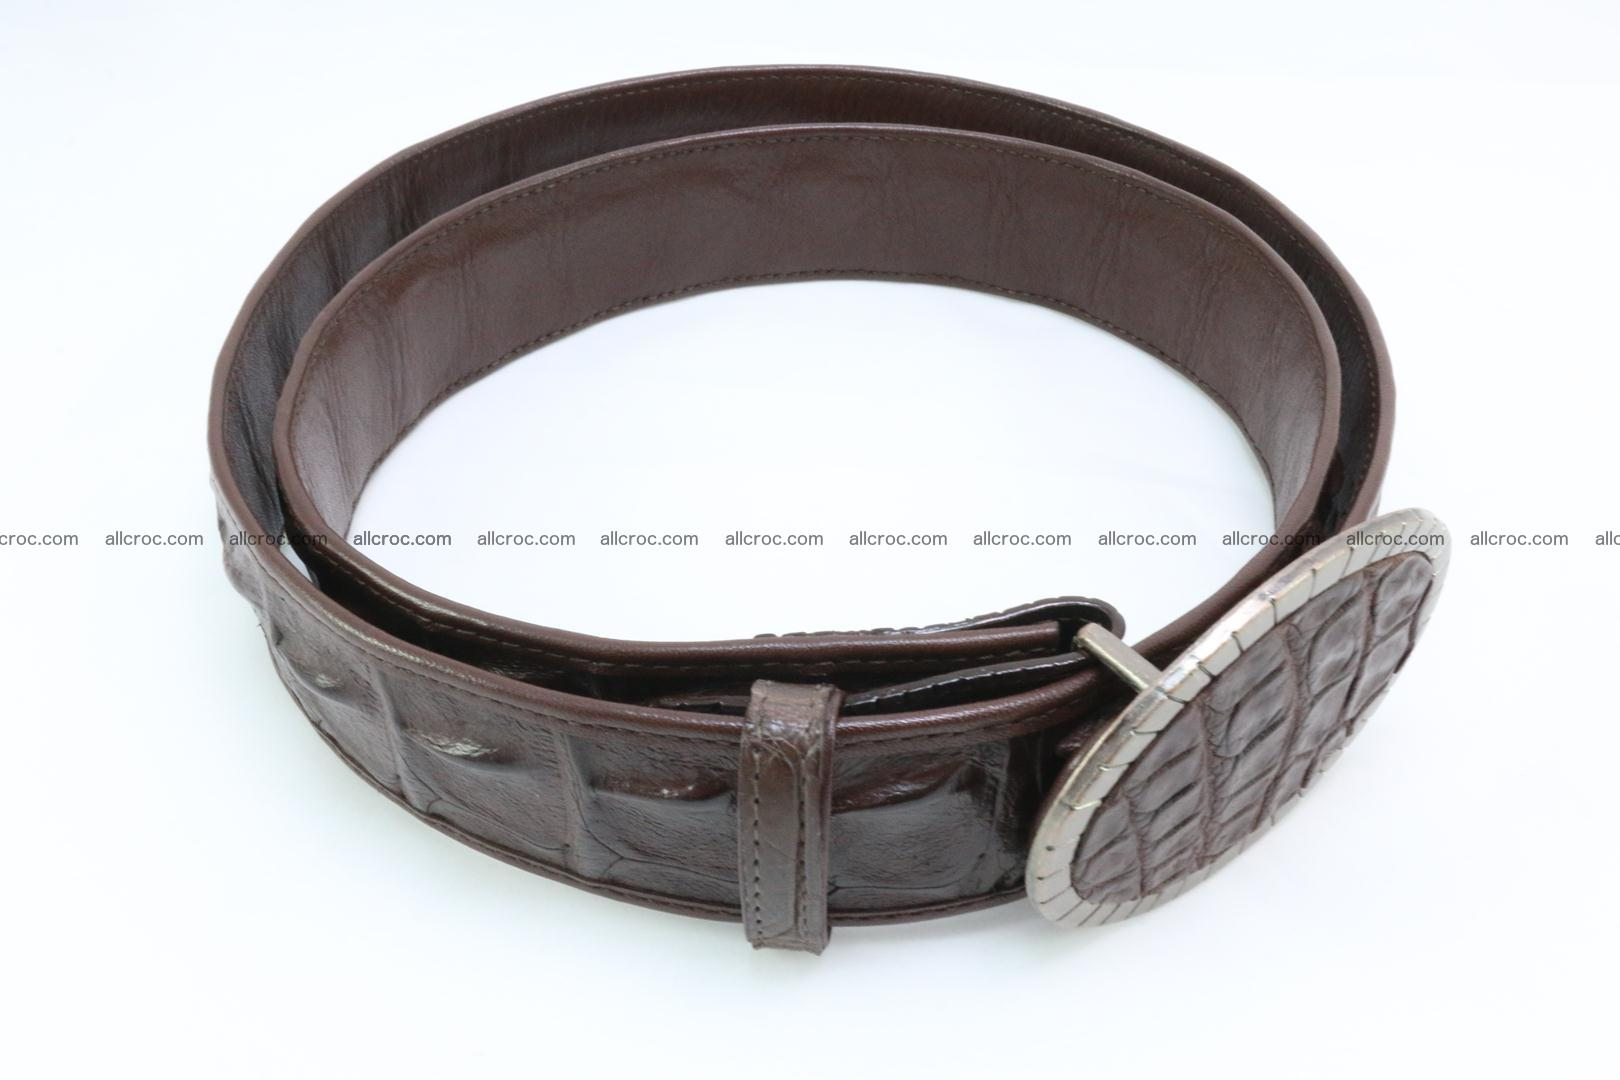 Genuine crocodile leather hornback belt 095 Foto 1